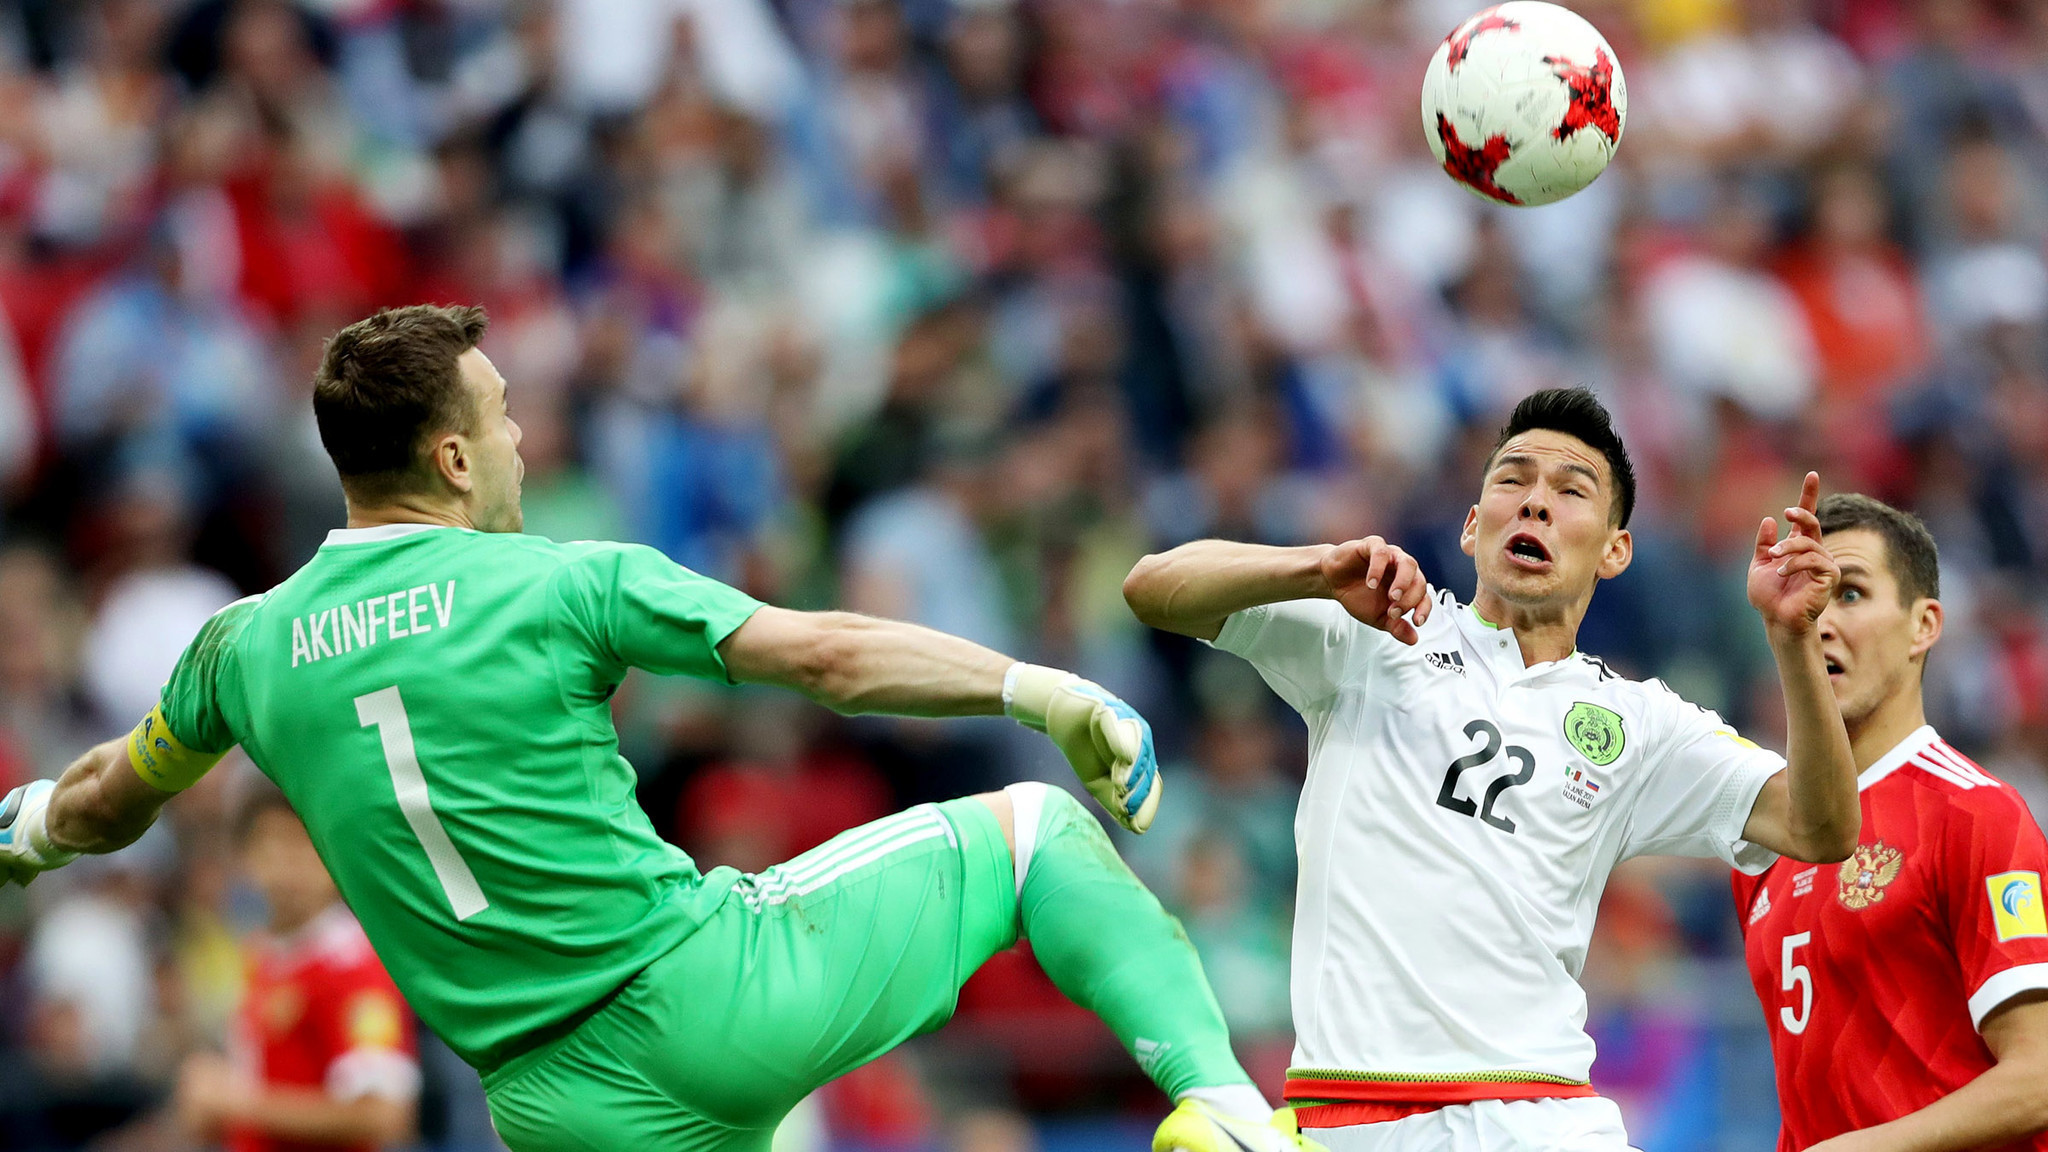 Mexico beats Russia to advance to Confederations Cup semifinal